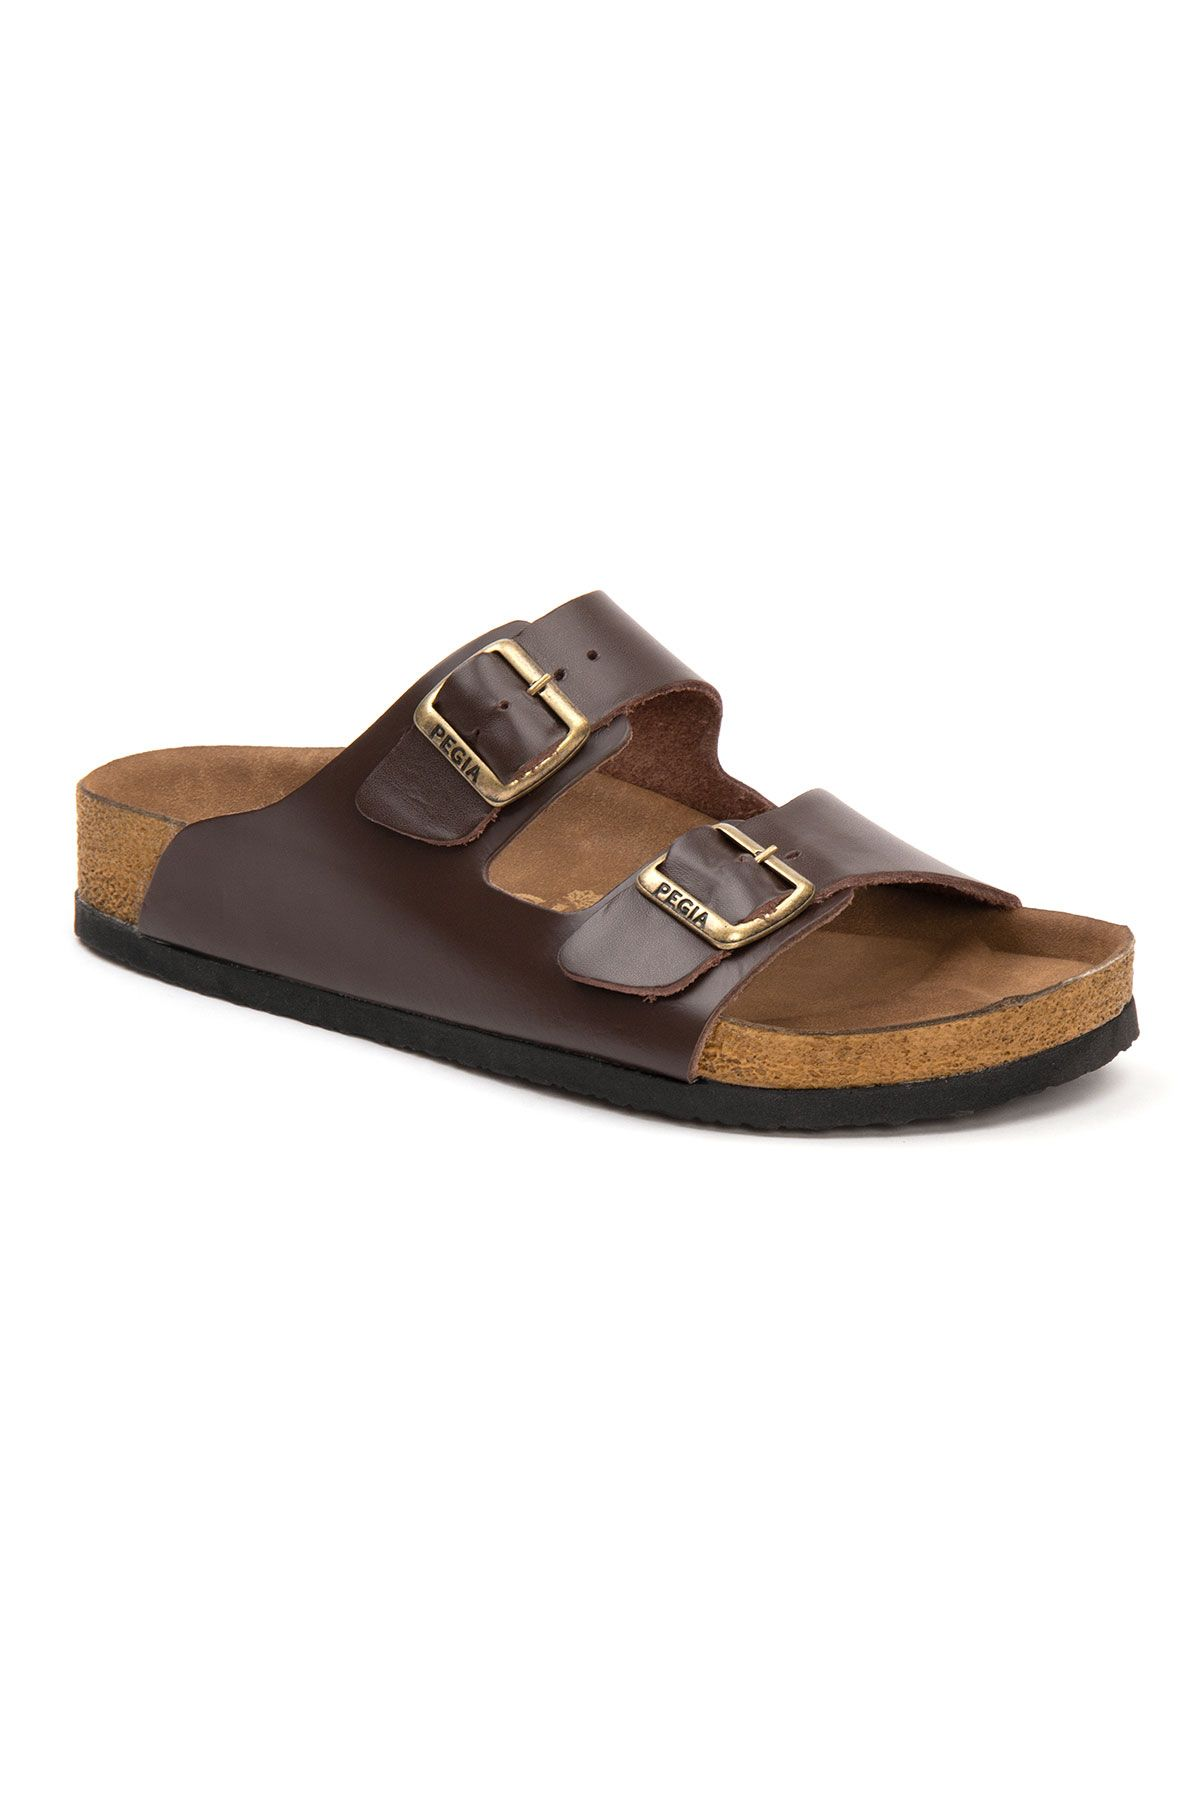 Pegia Women's Leather Strap Slippers 215521 Brown